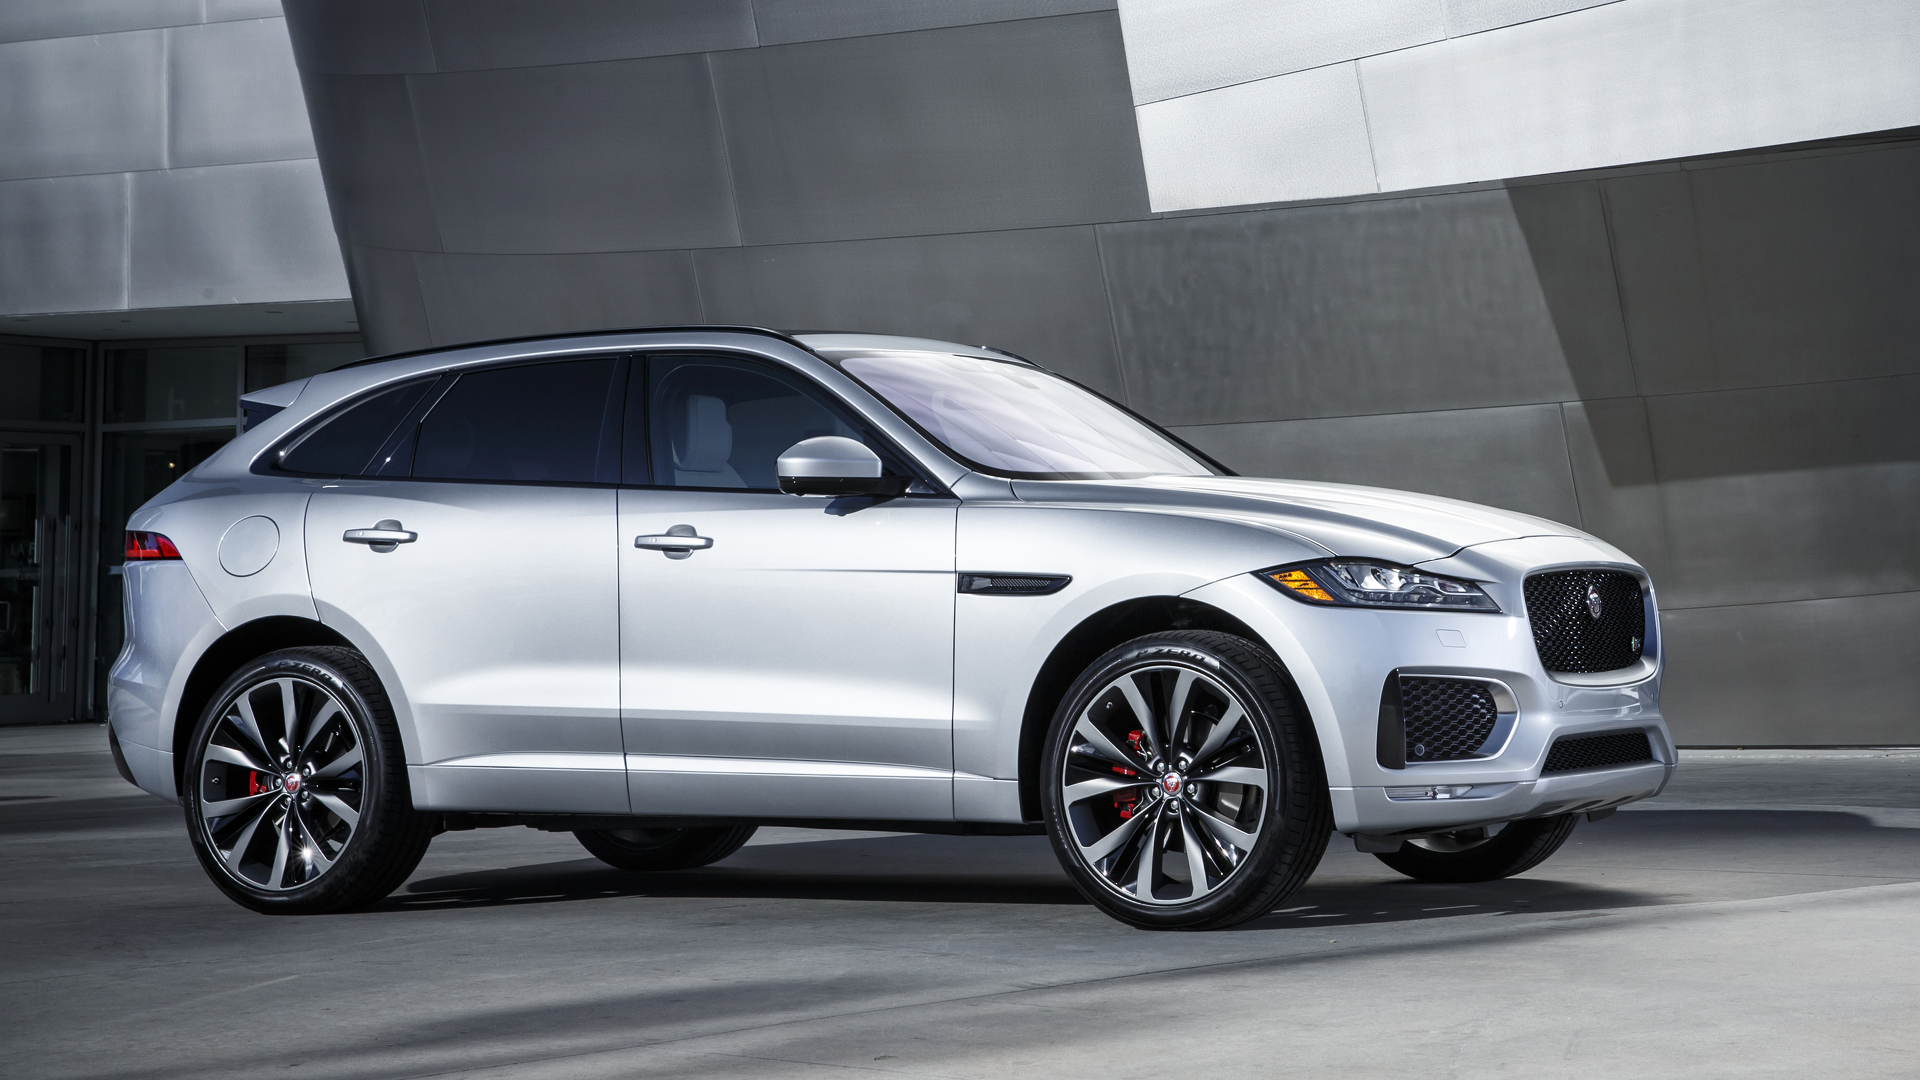 jaguar f pace news and reviews. Black Bedroom Furniture Sets. Home Design Ideas